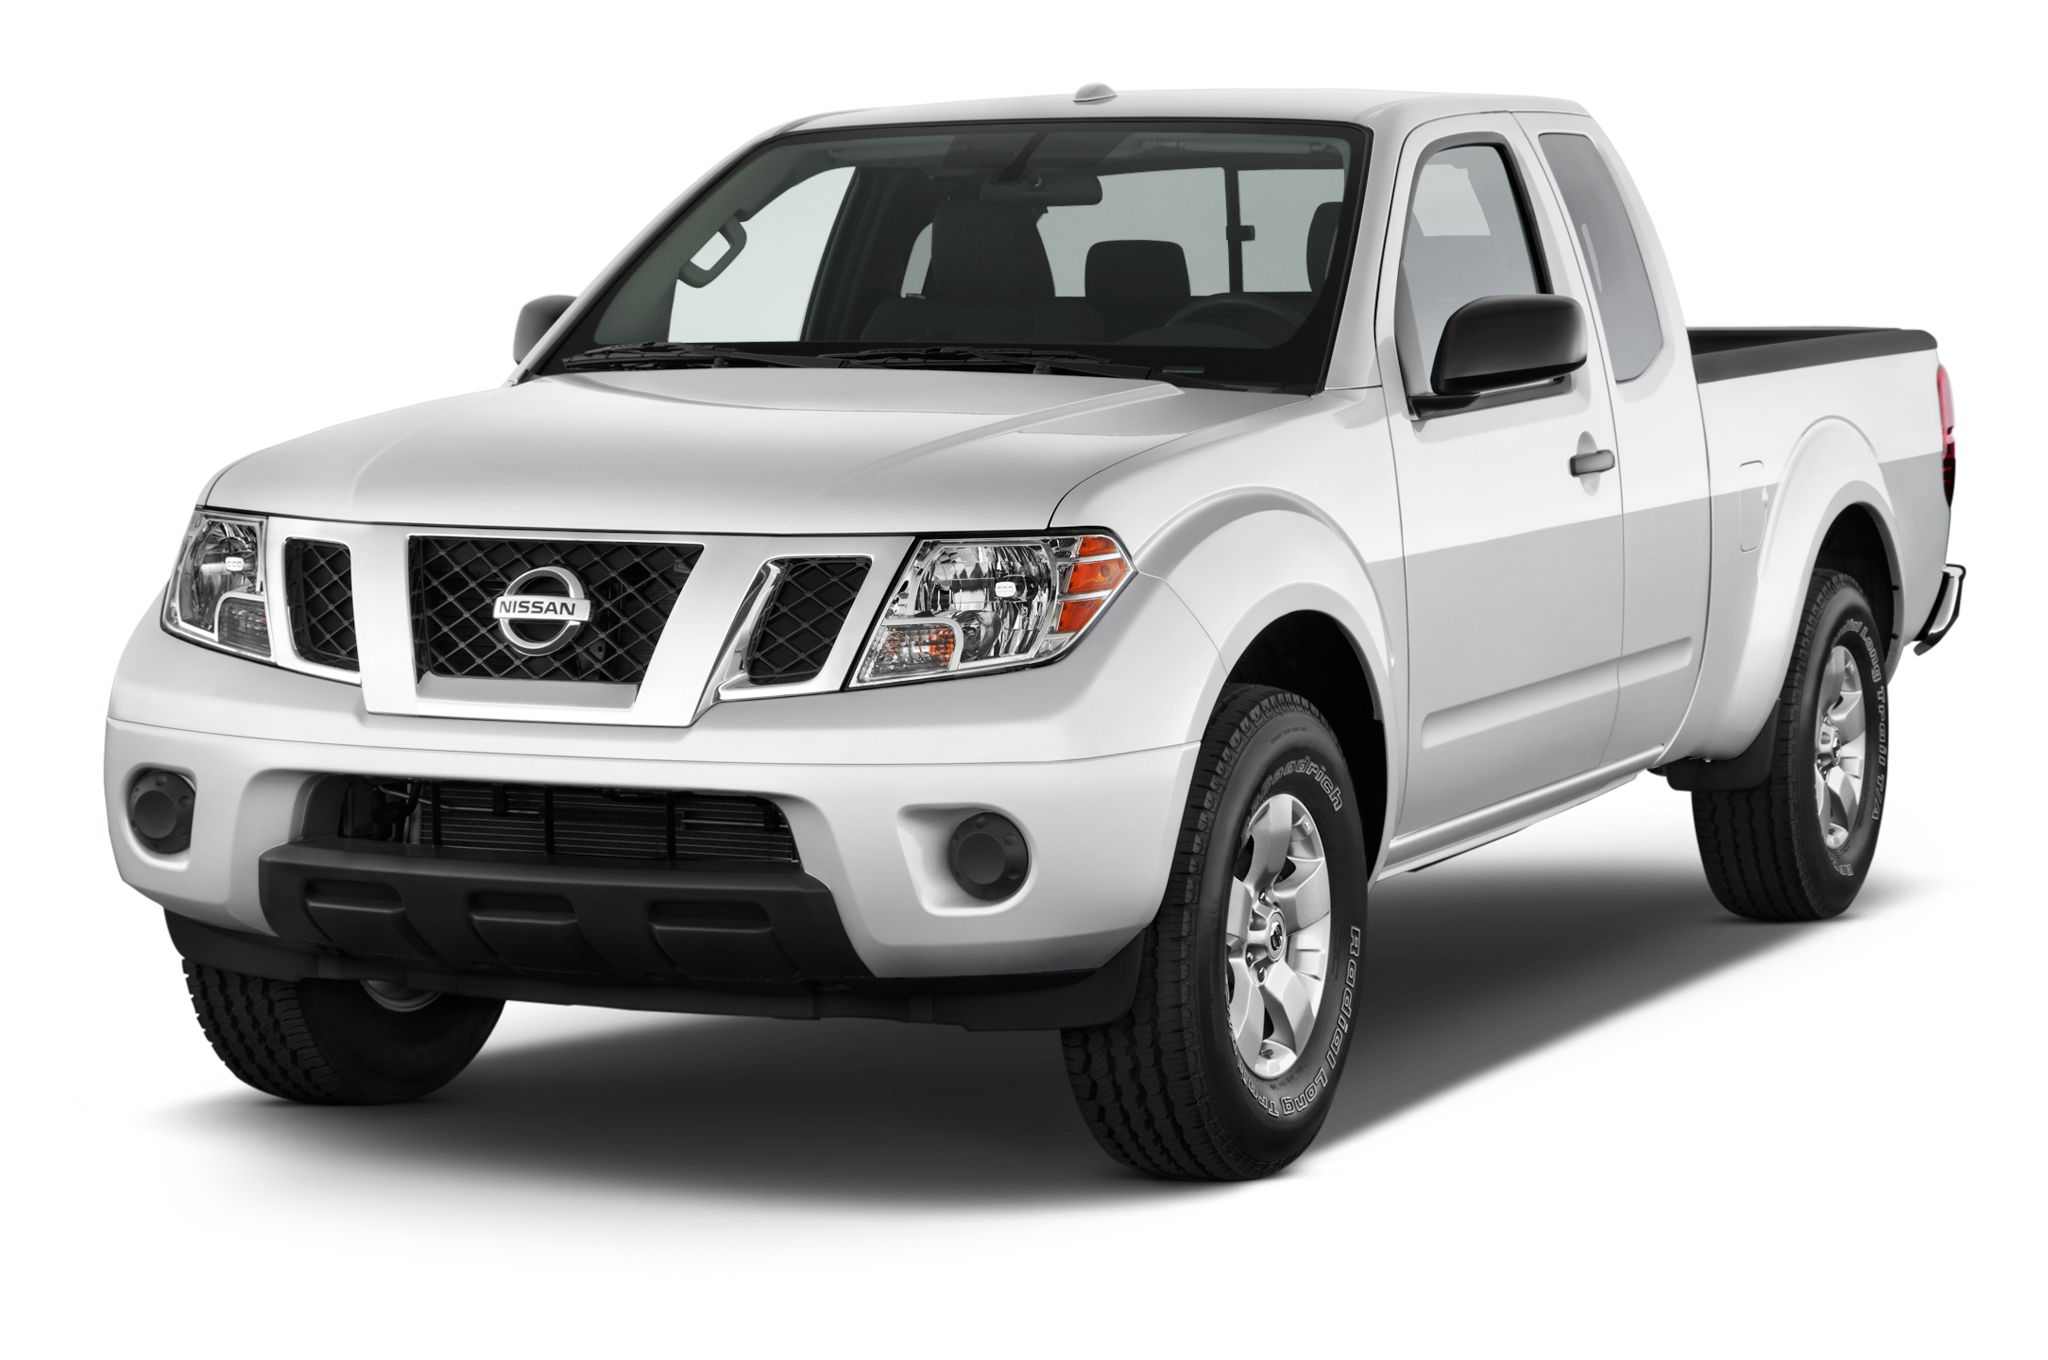 hight resolution of 2014 nissan frontier automatic transmission manual transmission repair manuals final drive